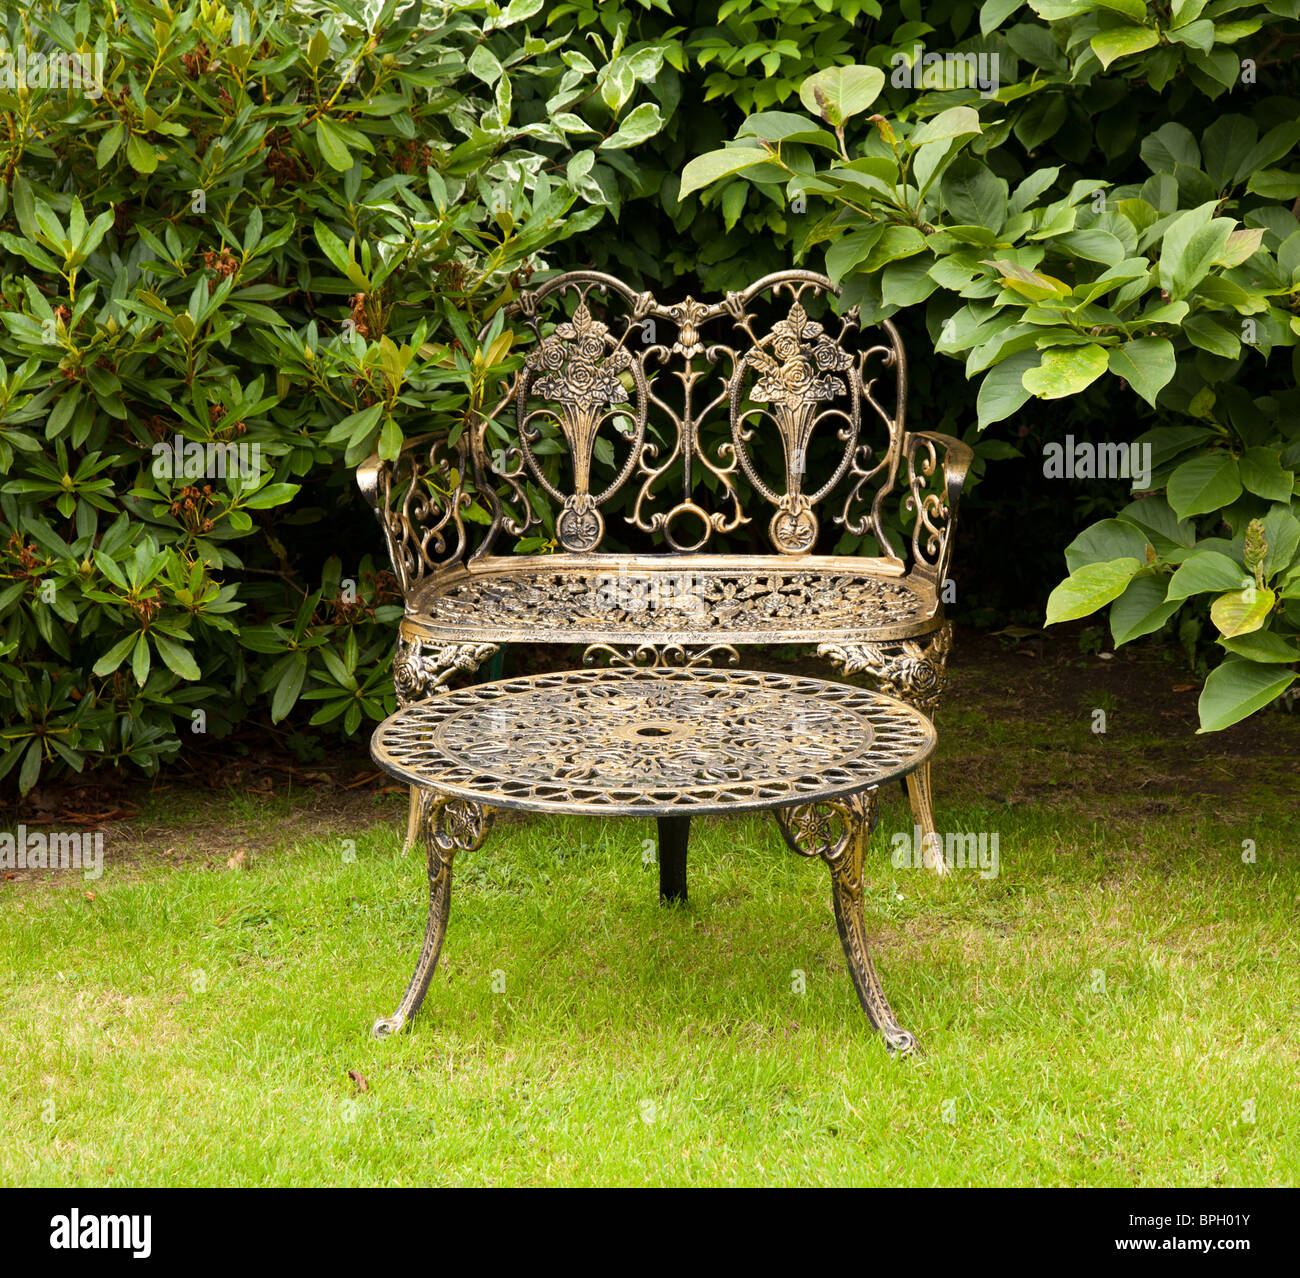 Colored cast - Old Fashioned Gold Colored Cast Iron Table And Bench On Formal Lawn